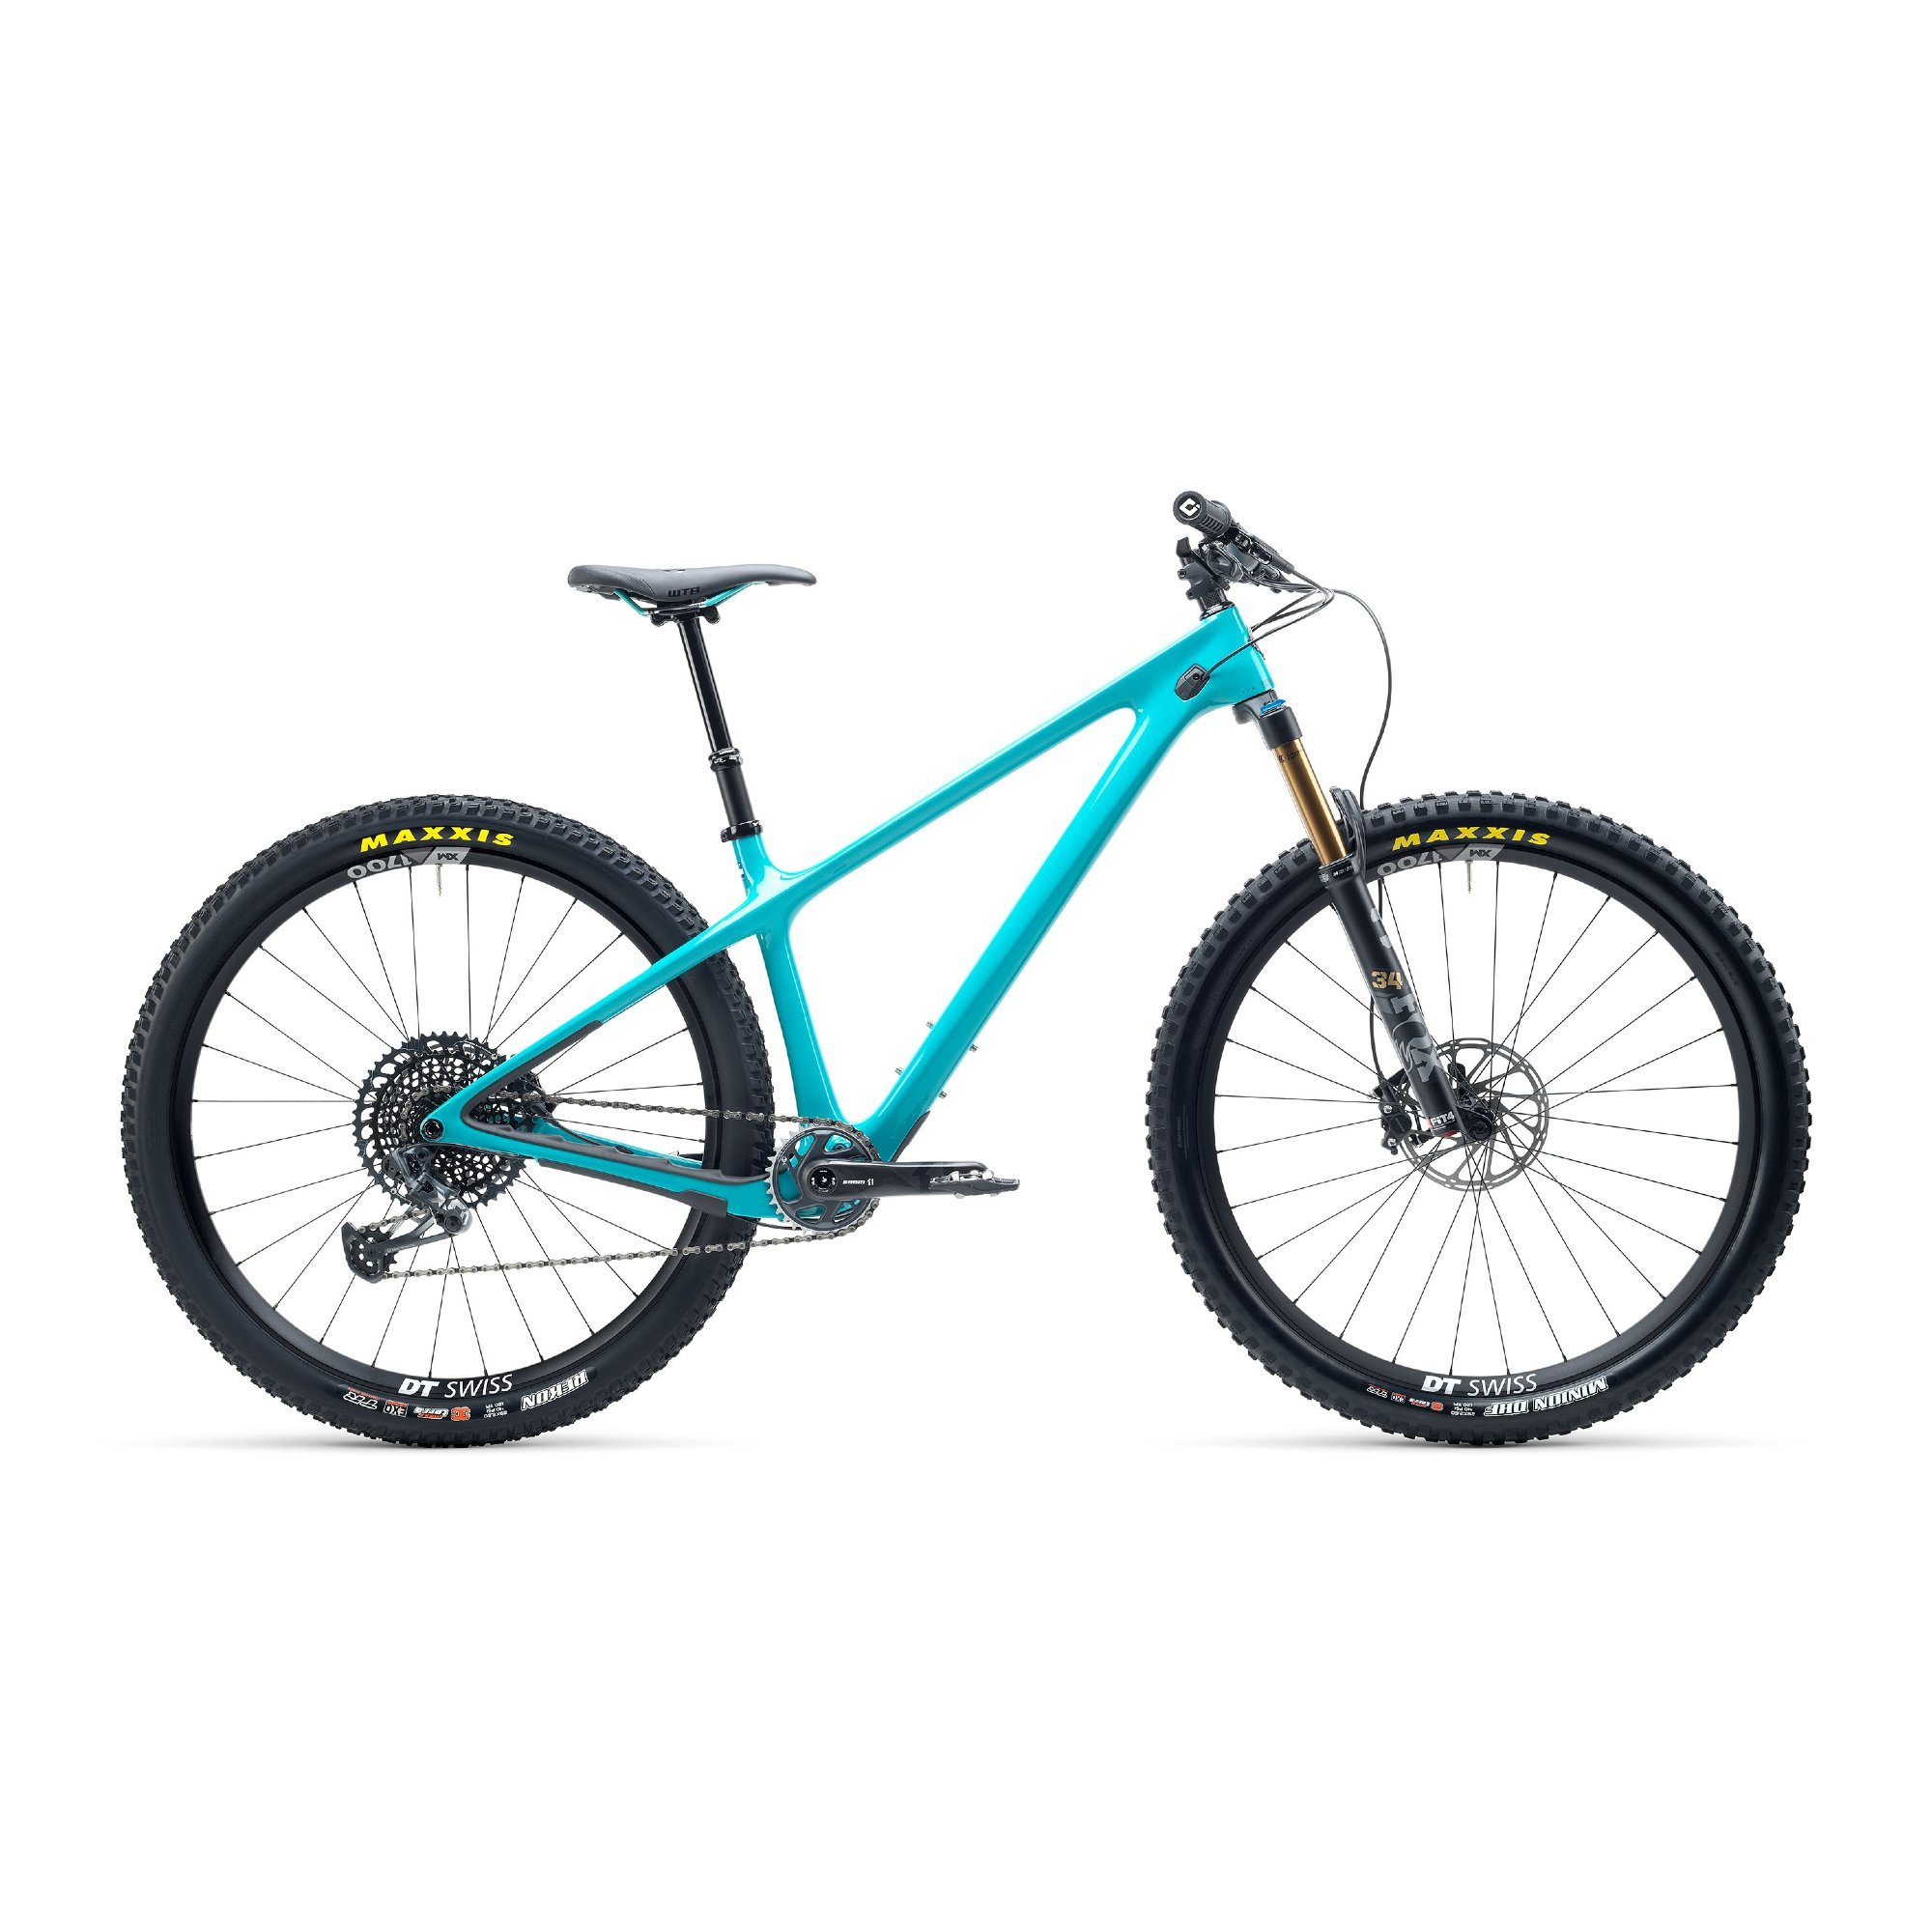 Yeti ARC T Series T2 XO1 29er Carbon Hardtail Mountain Bike 2021 Turq